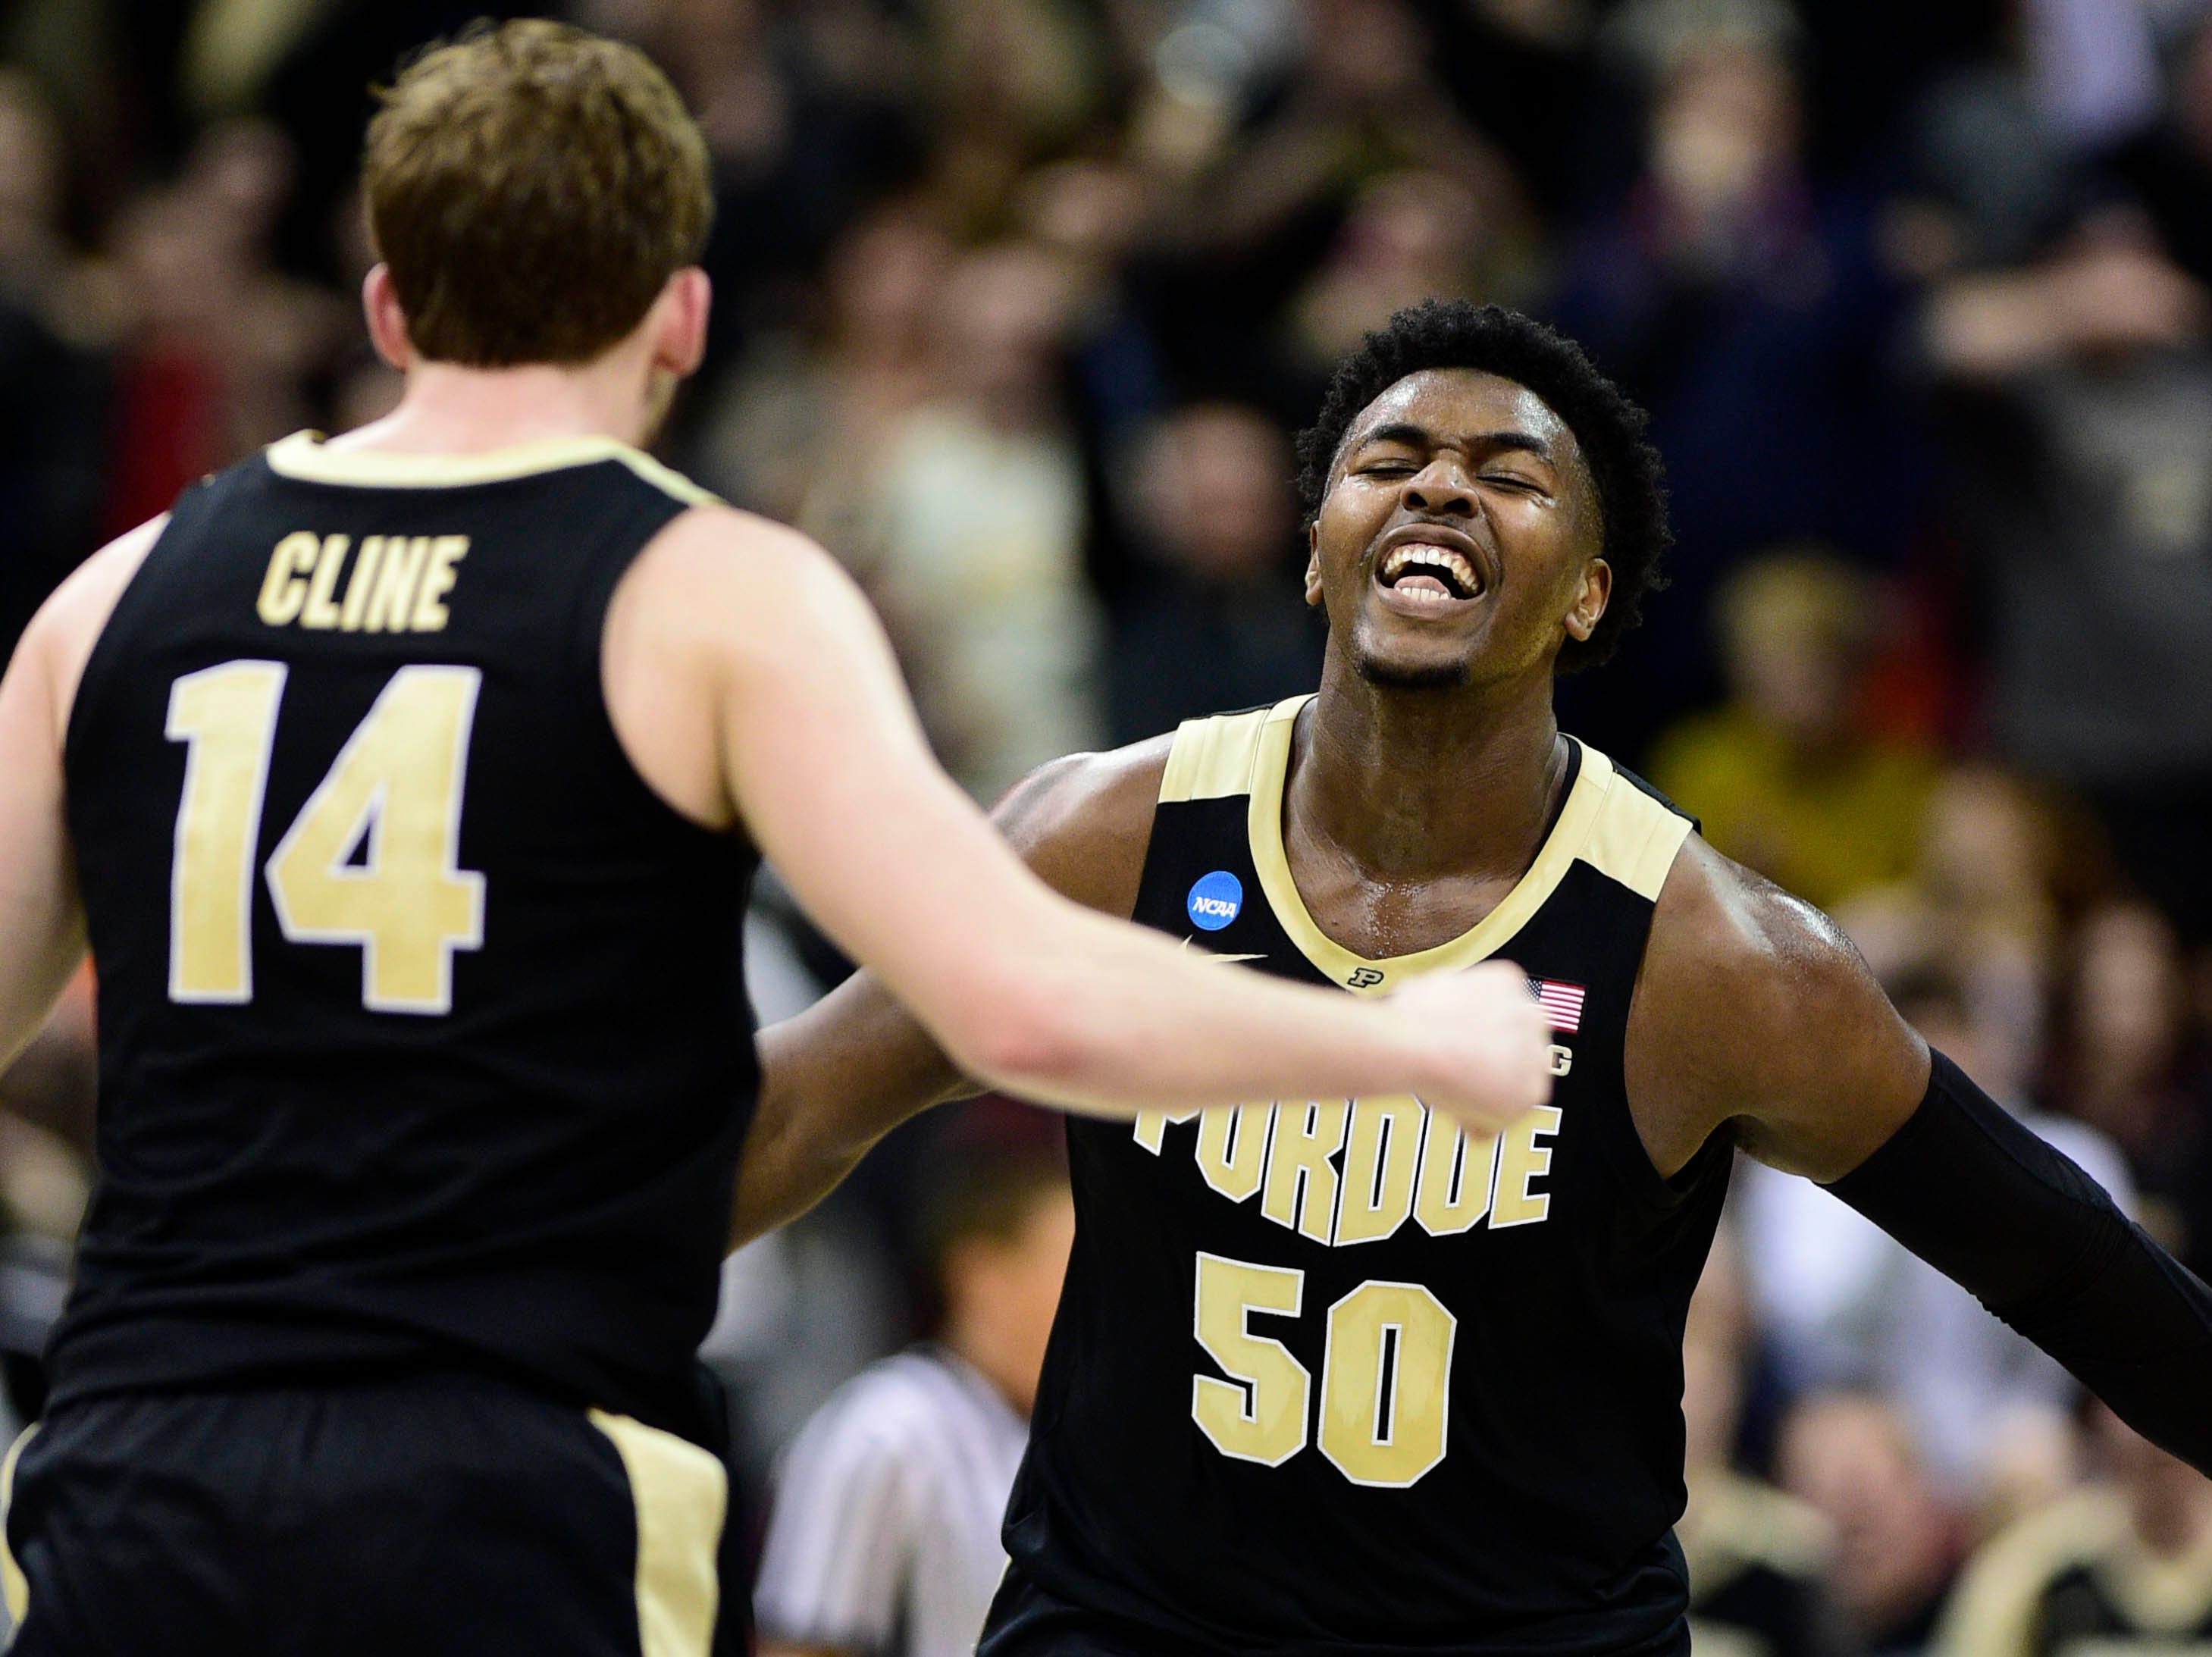 Mar 30, 2019; Louisville, KY, United States; Purdue Boilermakers forward Trevion Williams (50) reacts with guard Ryan Cline (14) during the second half in the championship game against the Virginia Cavaliers of the south regional of the 2019 NCAA Tournament at KFC Yum Center. Mandatory Credit: Thomas J. Russo-USA TODAY Sports